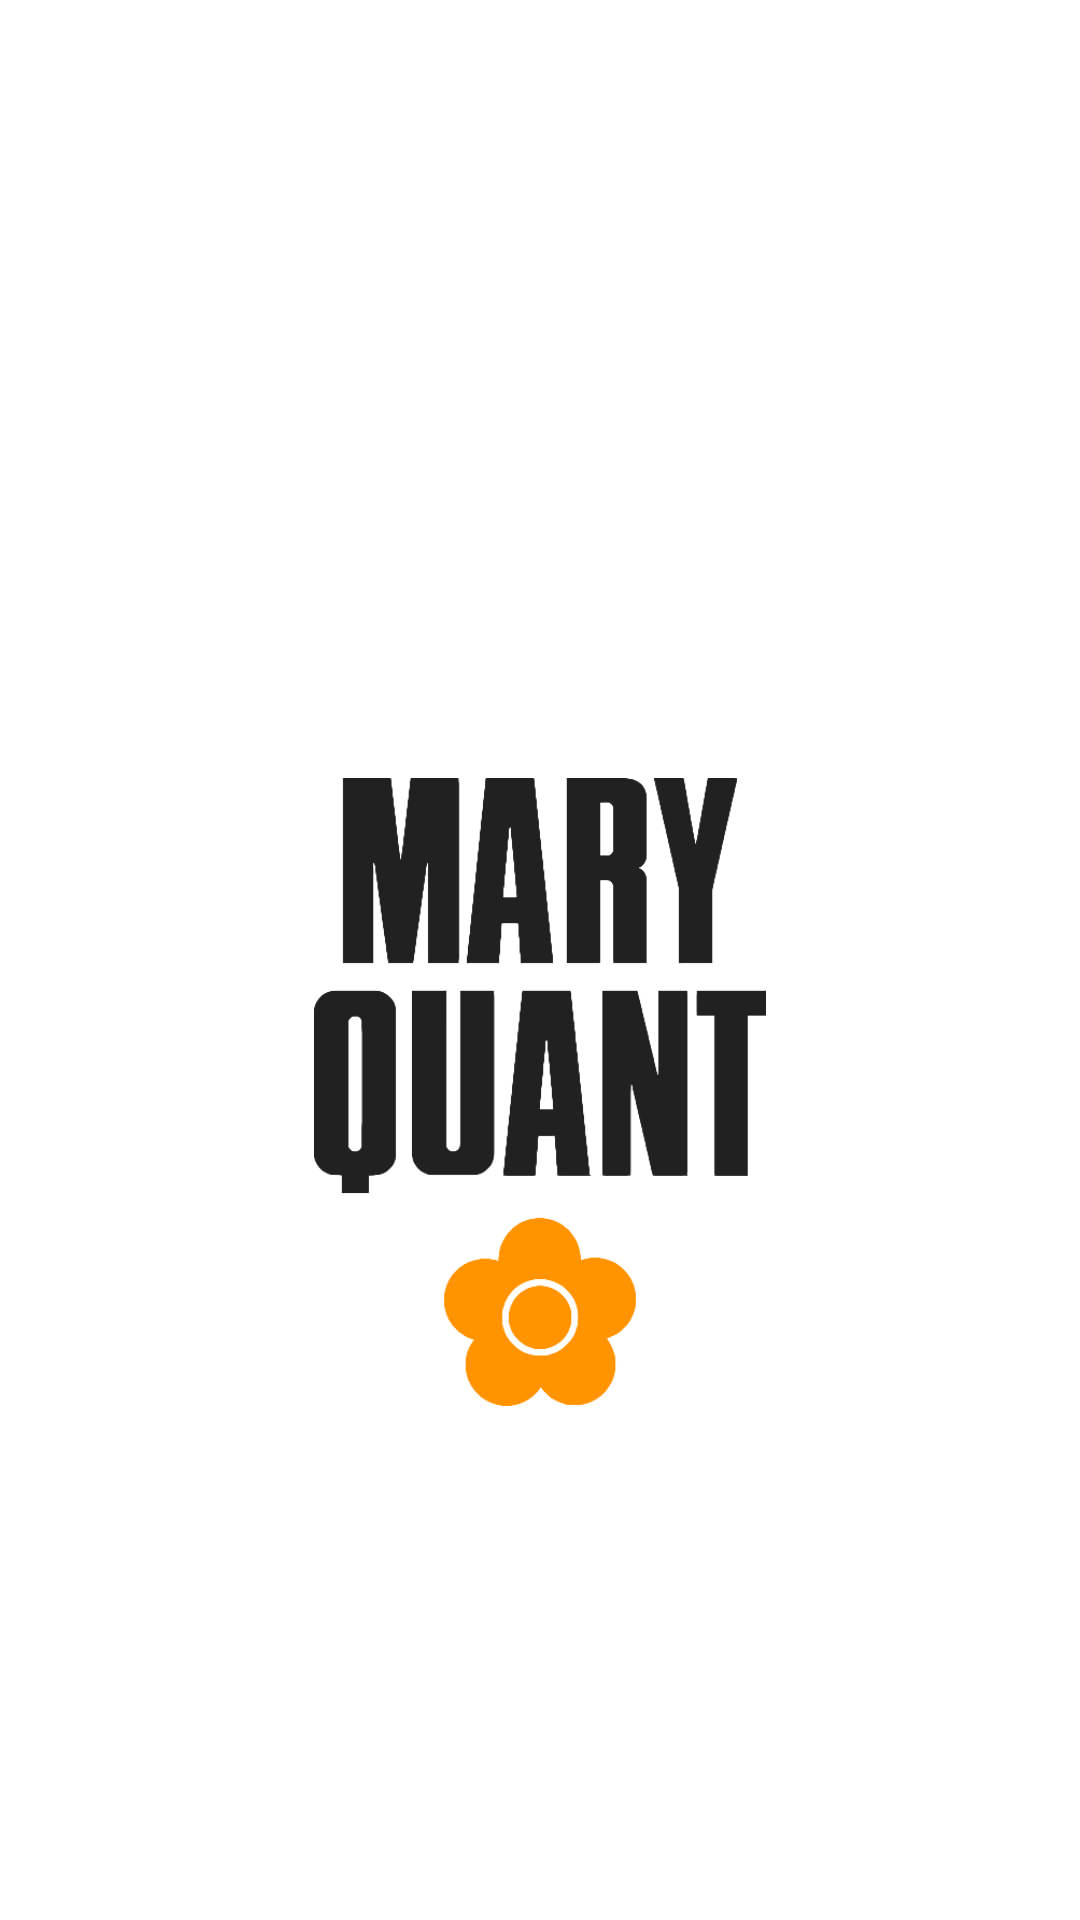 maryquant i18 - 20 MARY QUANT HQ Smartphone Wallpaper Collection